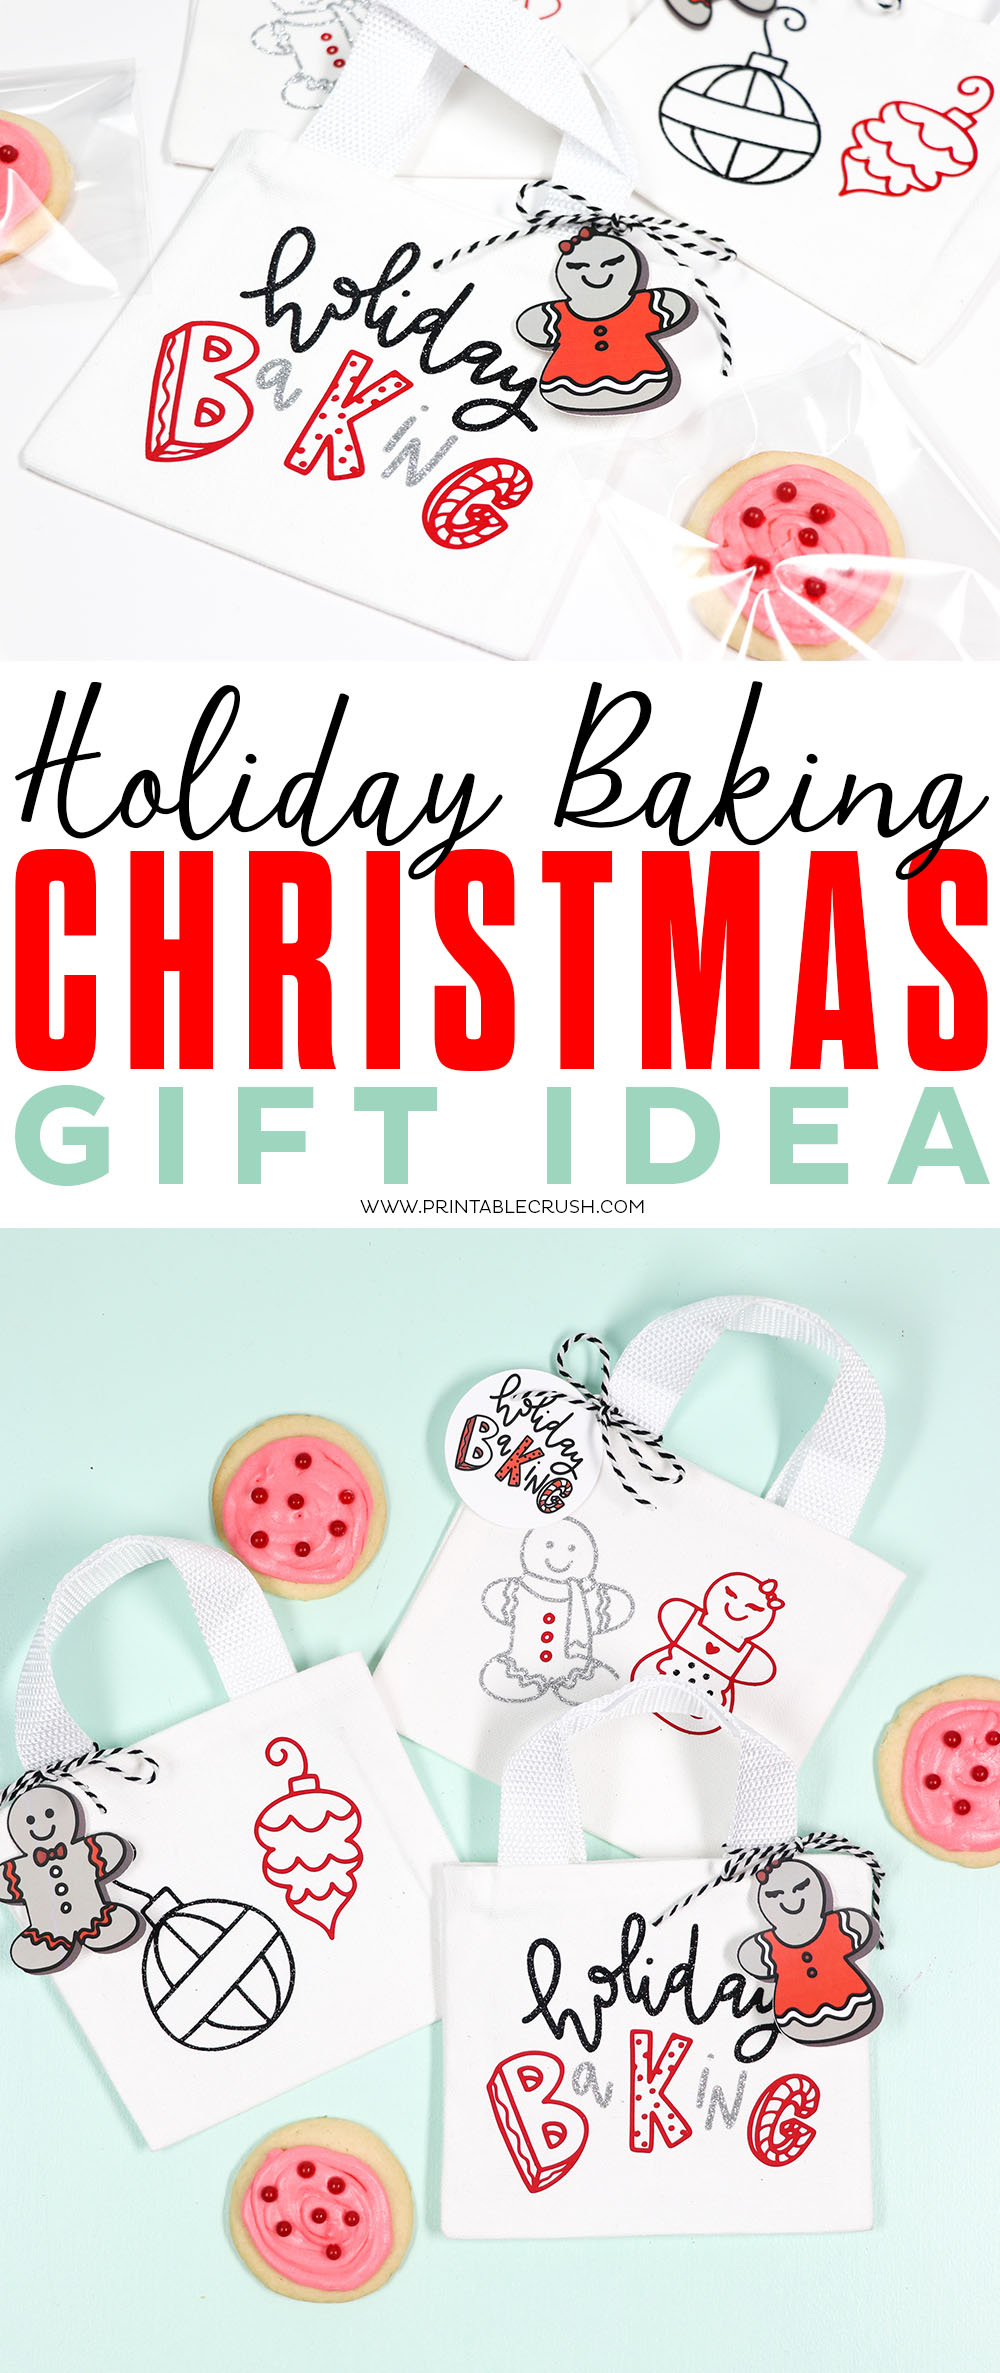 These Holiday Baking Christmas Gifts are too cute and so easy to make with the Cricut EasyPress! #diychristmasgift #christmascookieexchange #cricuteasypress #sayitwithcricut #cricutmade via @printablecrush